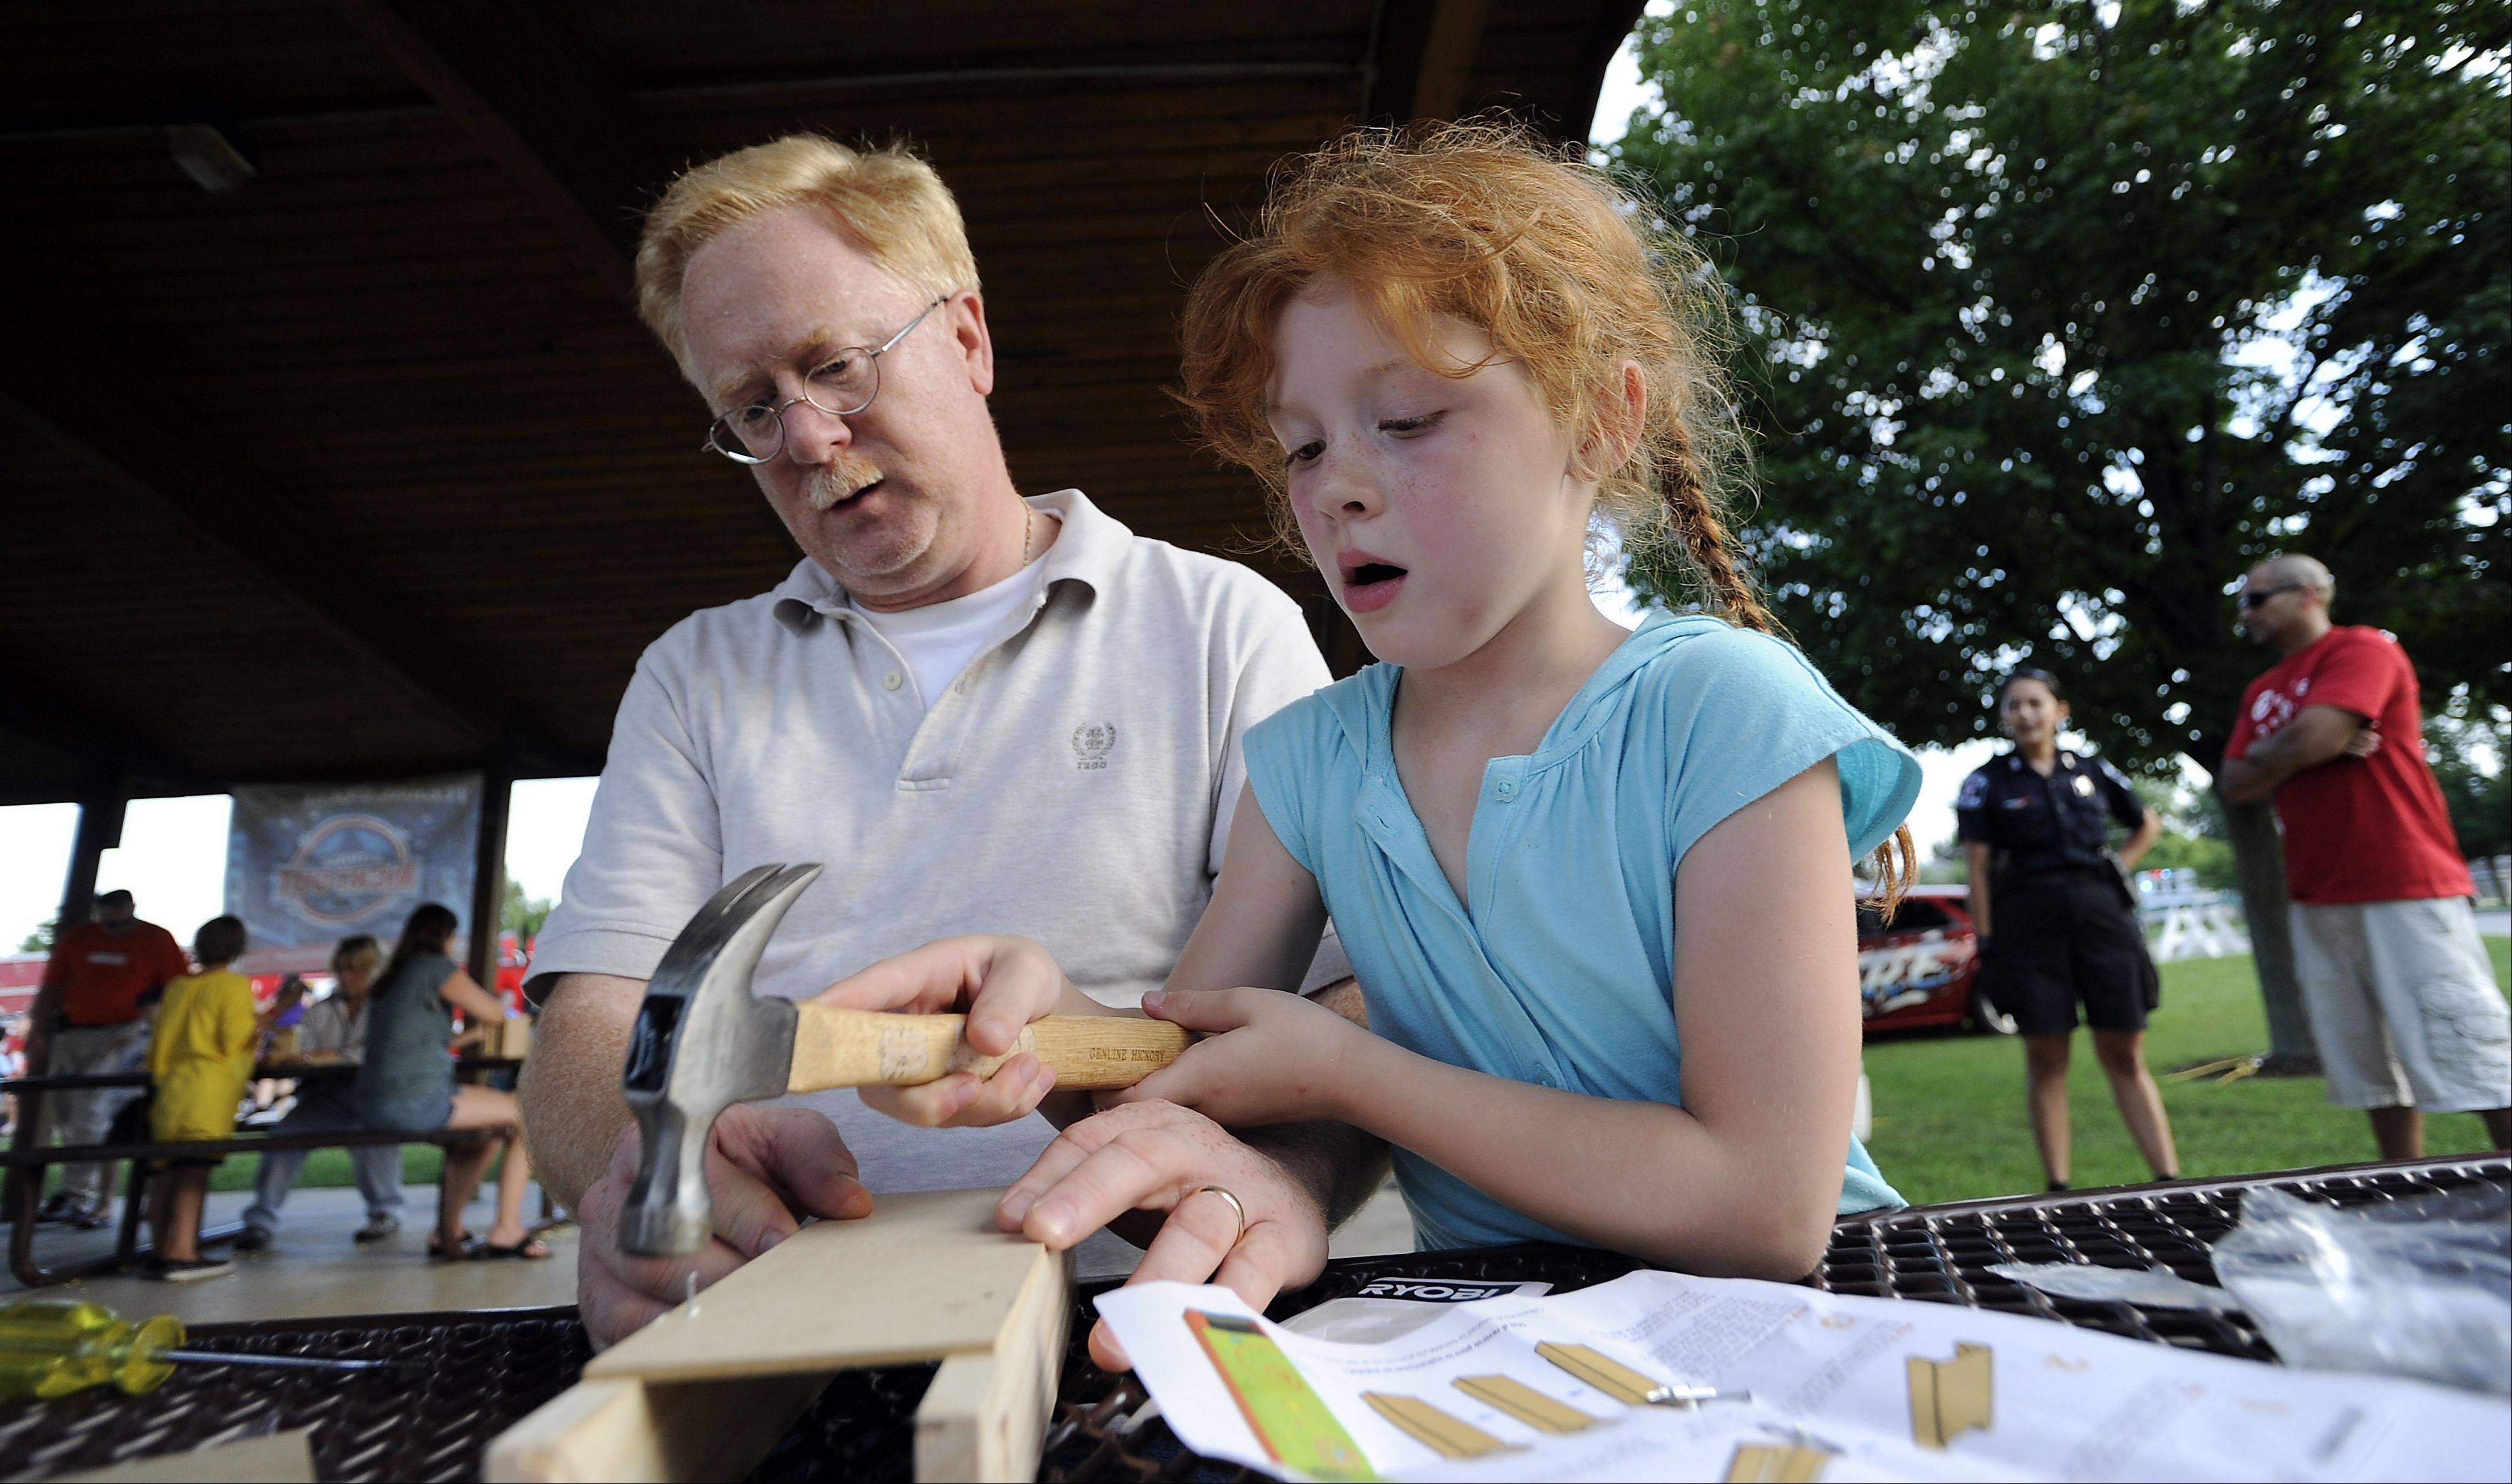 Don Llewellyn and his daughter Caitlyn, 6, construct a wooden periscope as part of Bartlett's celebration of National Night Out on Friday.